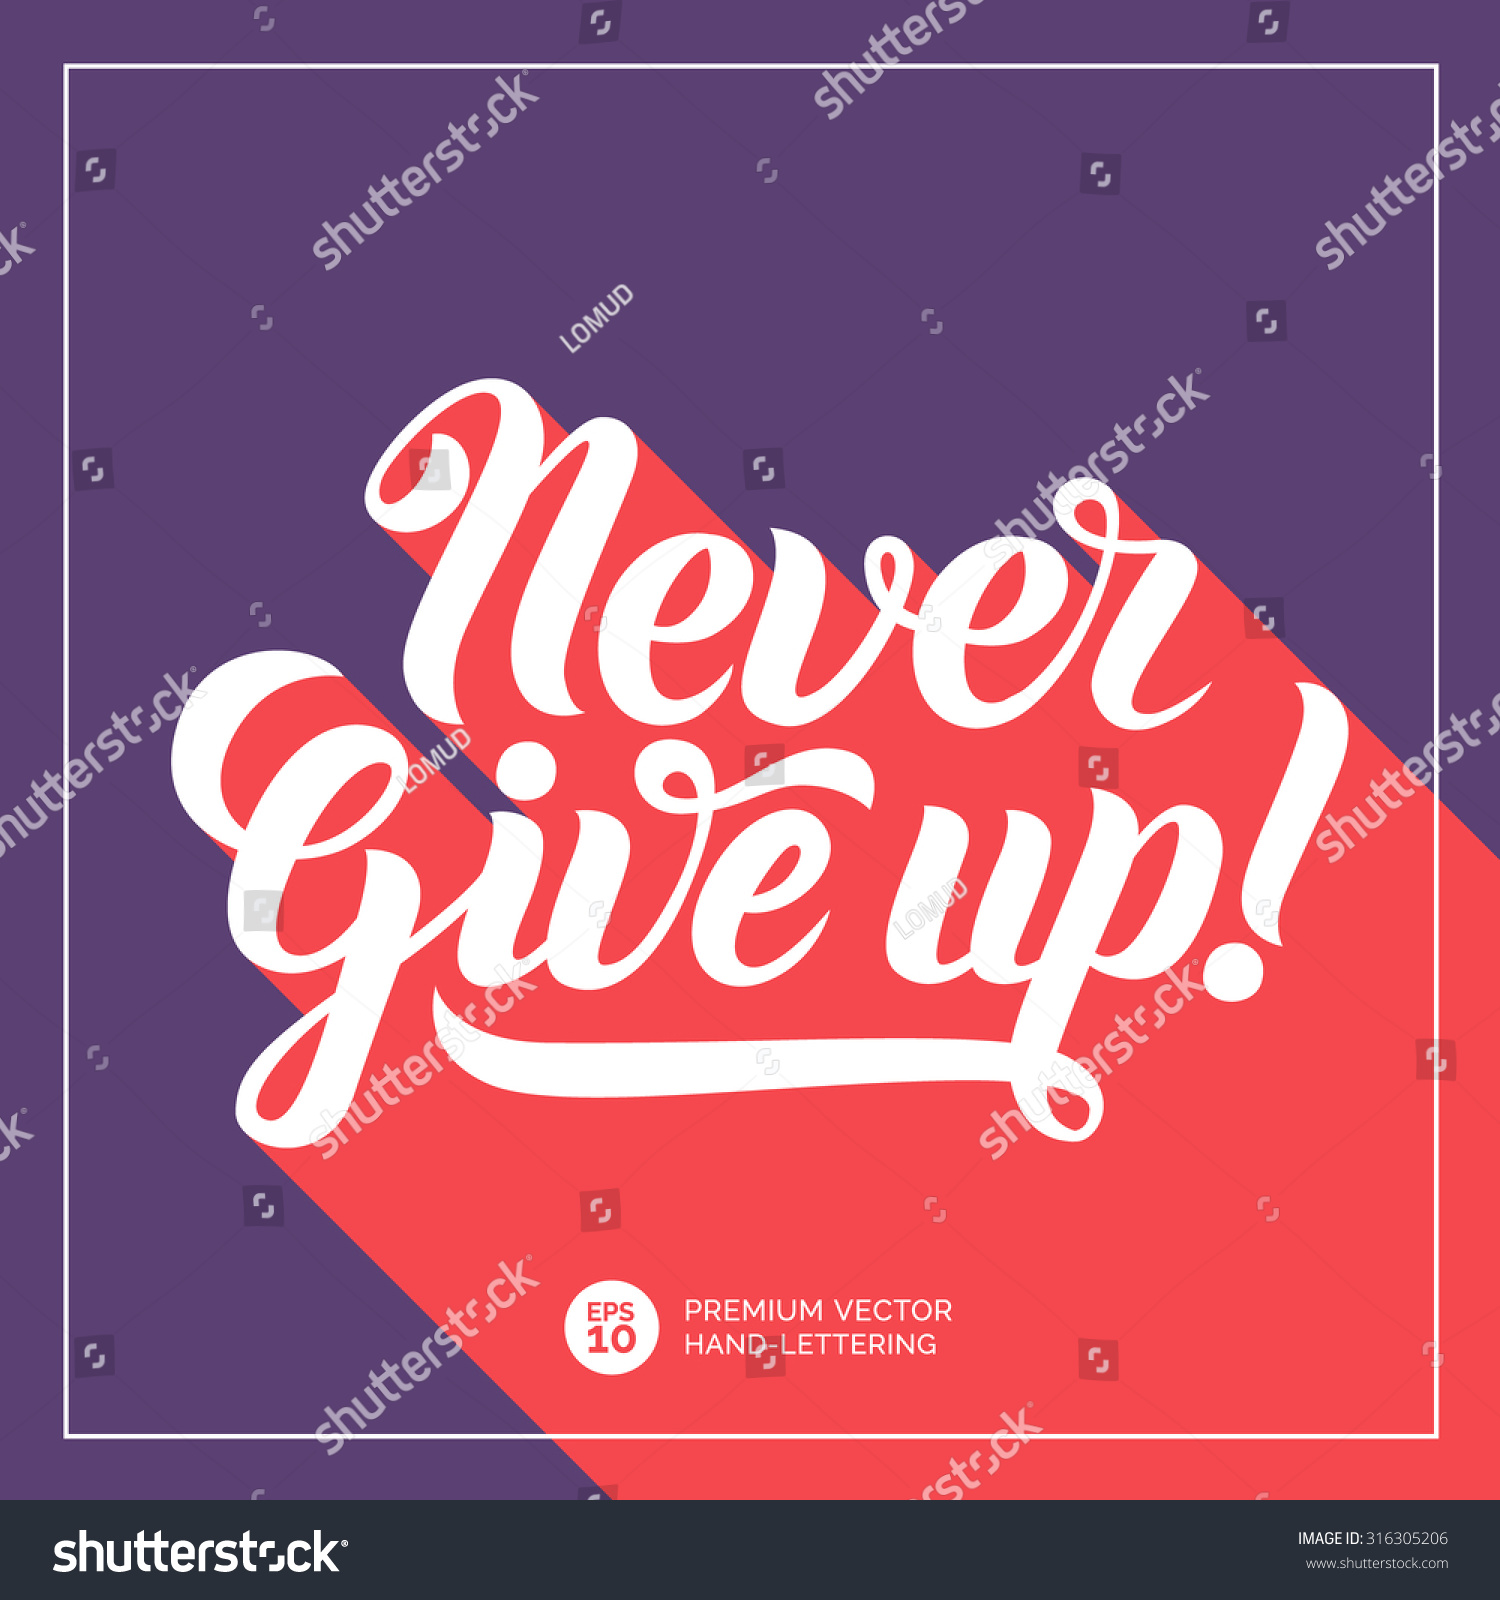 Never give up handlettering calligraphy inspirational